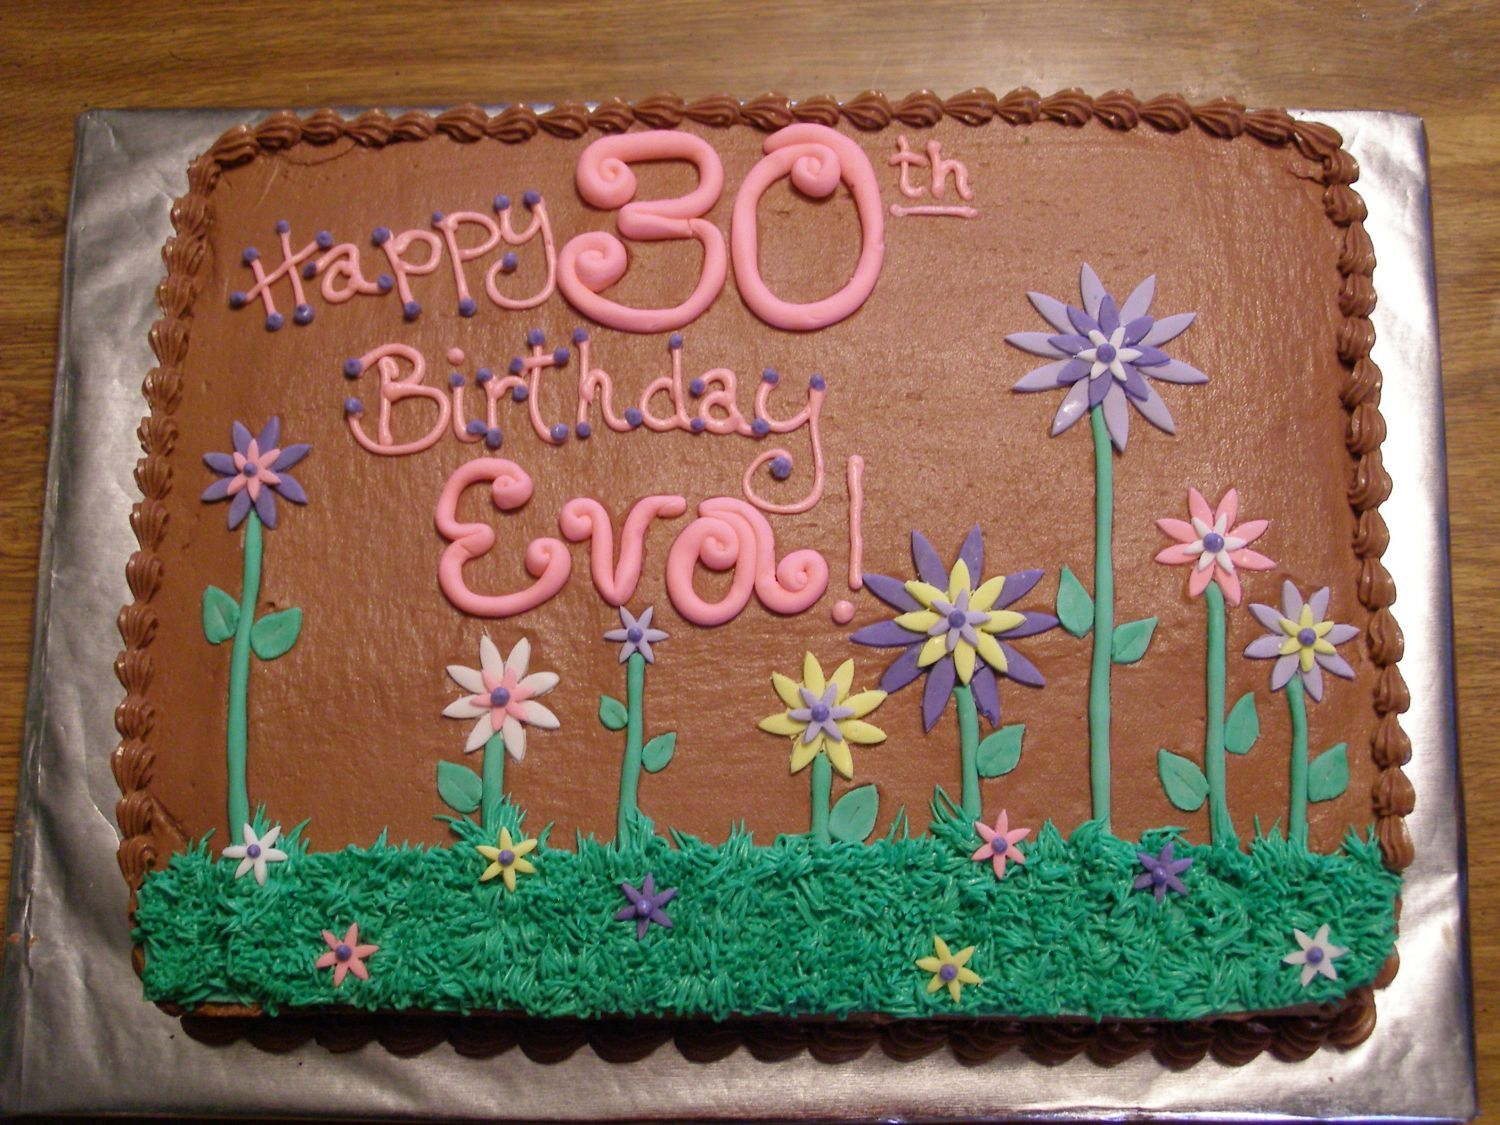 Happy 30th Birthday With Images Chocolate Buttercream Icing